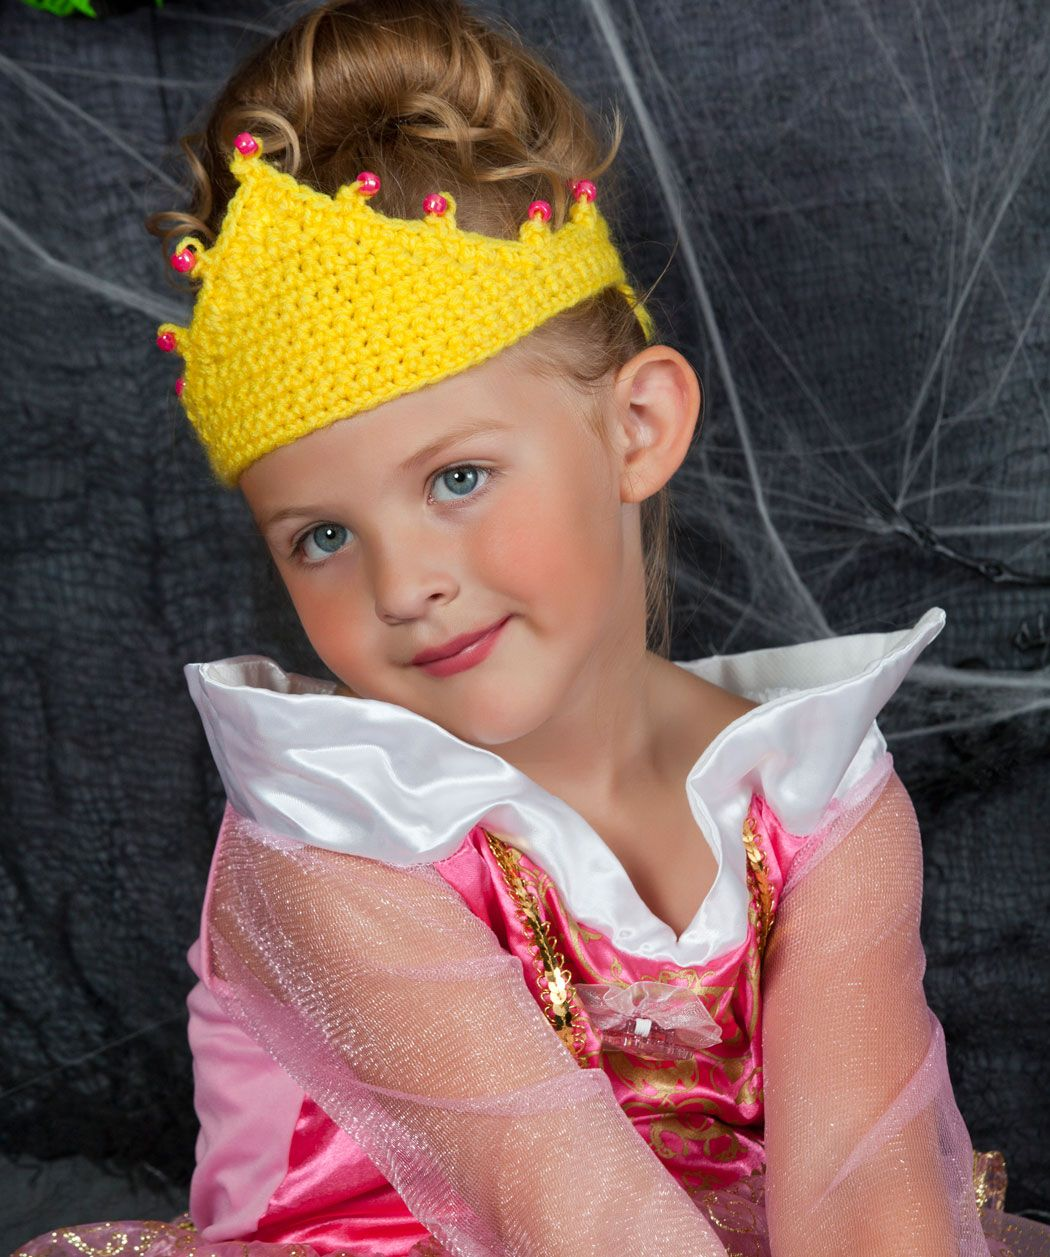 Tiara for a princess crochet pattern crochet halloween let your little girls dream of being a princess come true with this free crochet pattern princesses are one of the most popular halloween costume ideas bankloansurffo Image collections